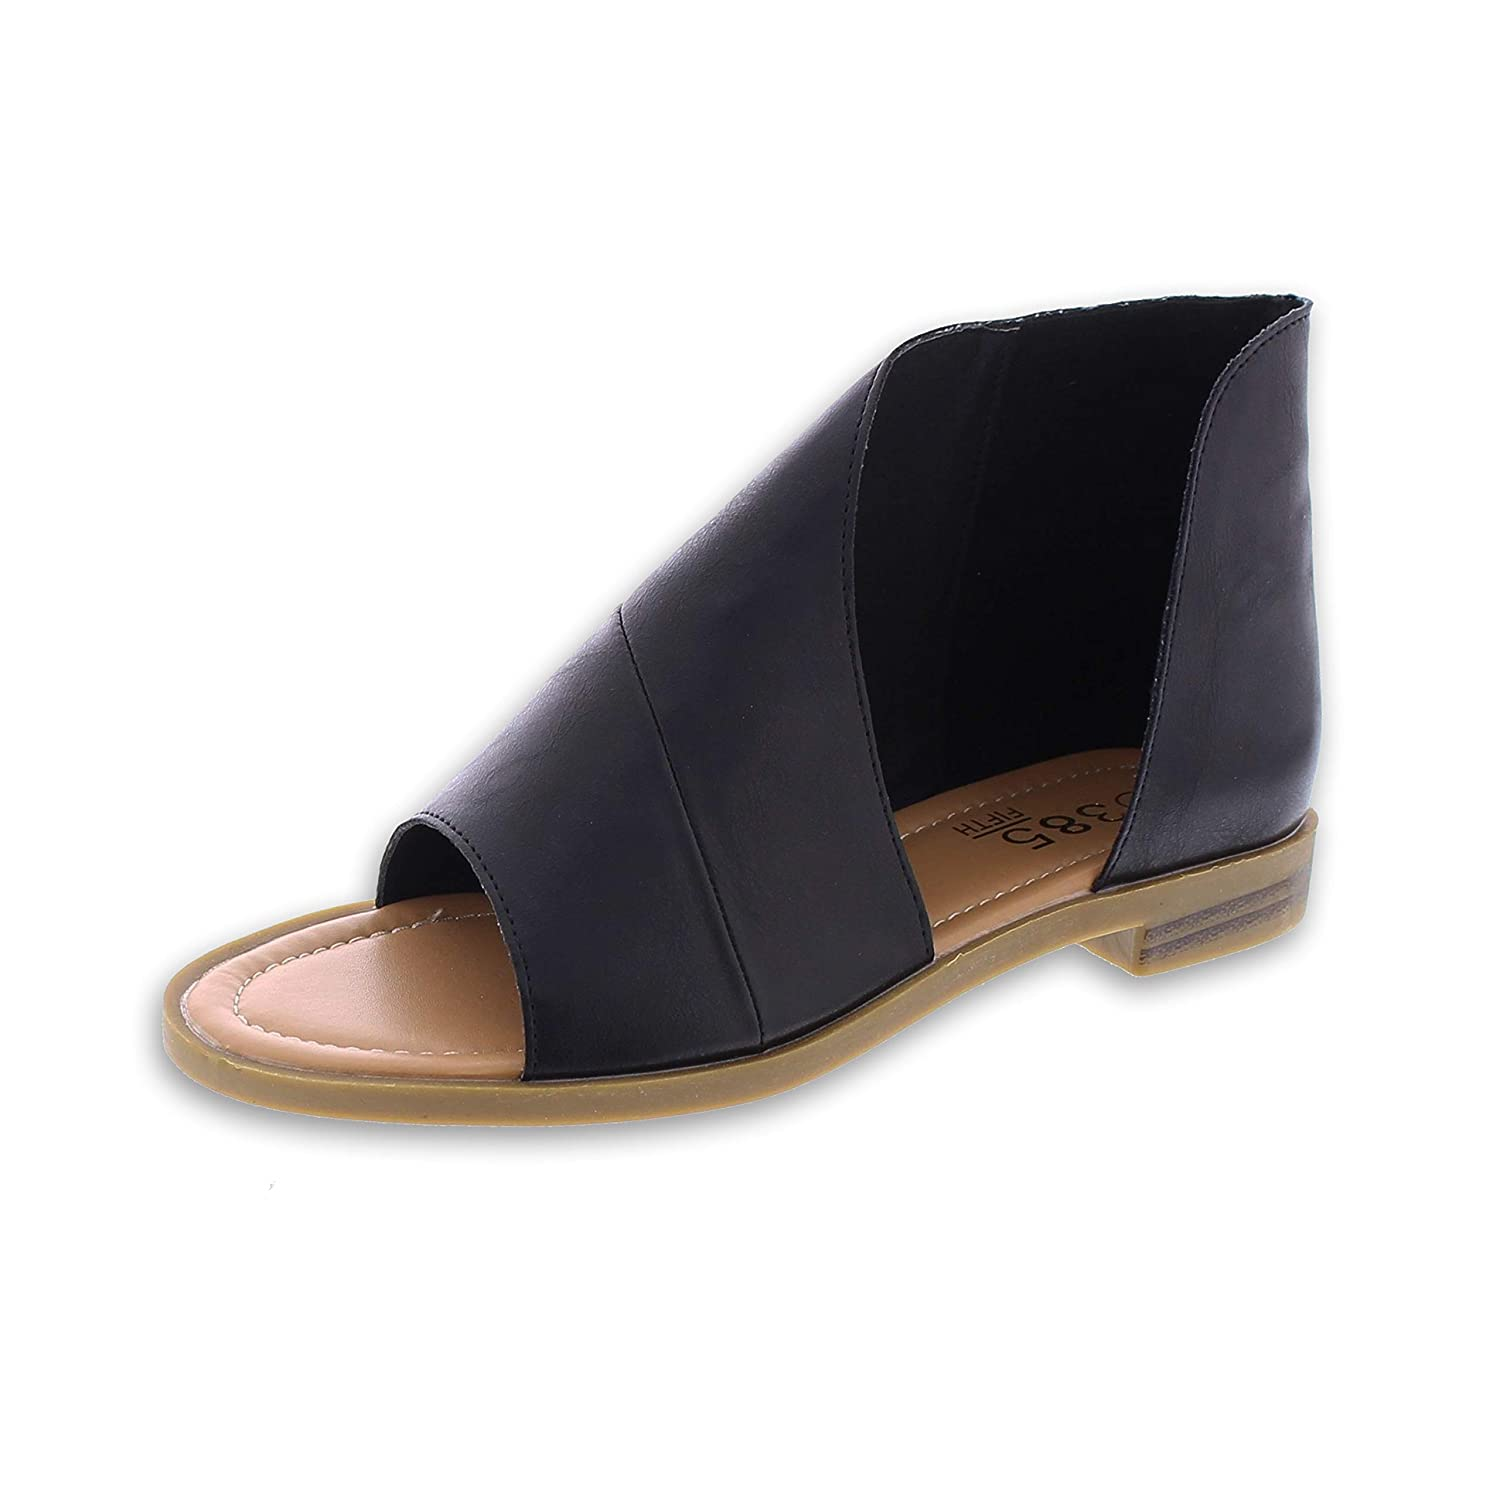 Want: A Chic Pair Of Asymmetrical Flat Sandals In A Cool ColorCombination